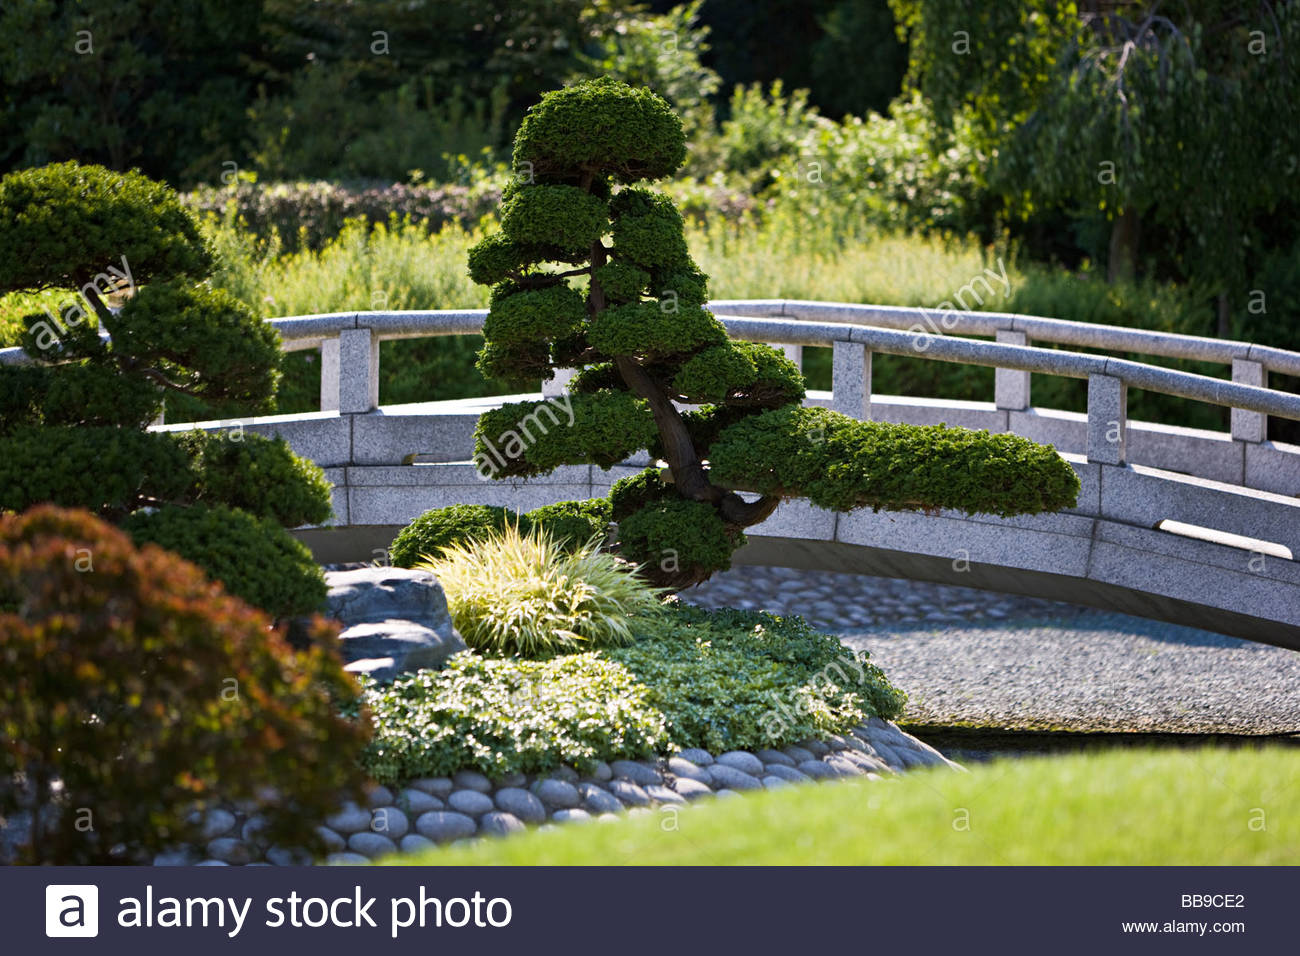 Japanese Garden Stone Bridge japanese dry garden stone bridge evergreen trees pruning shaping